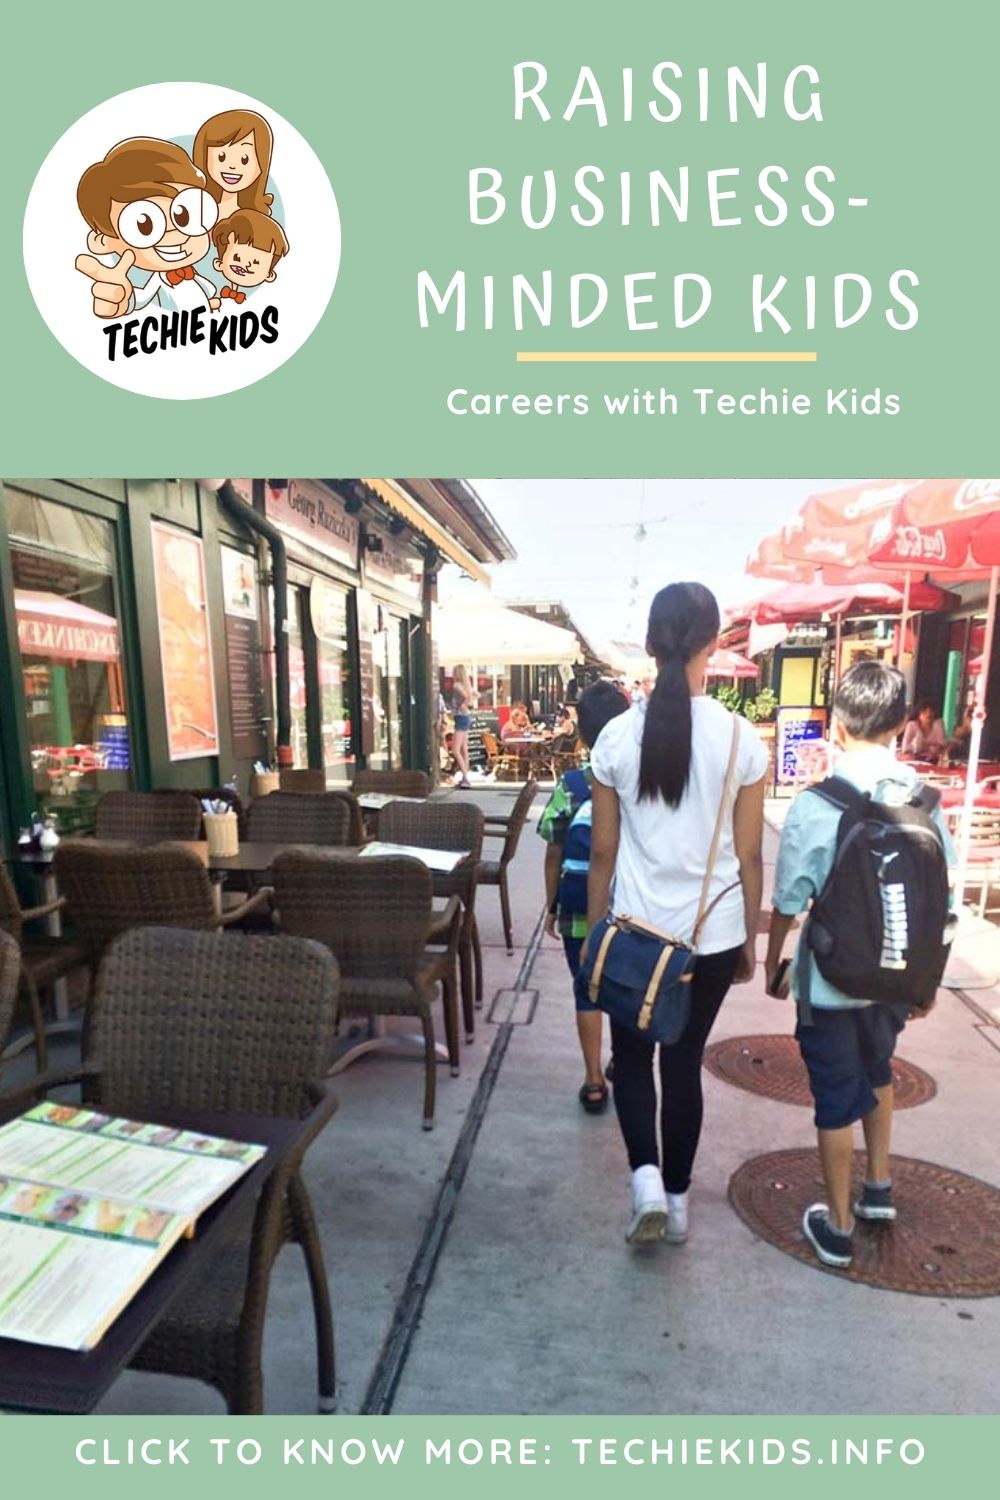 Business-Minded Kids, kids walking